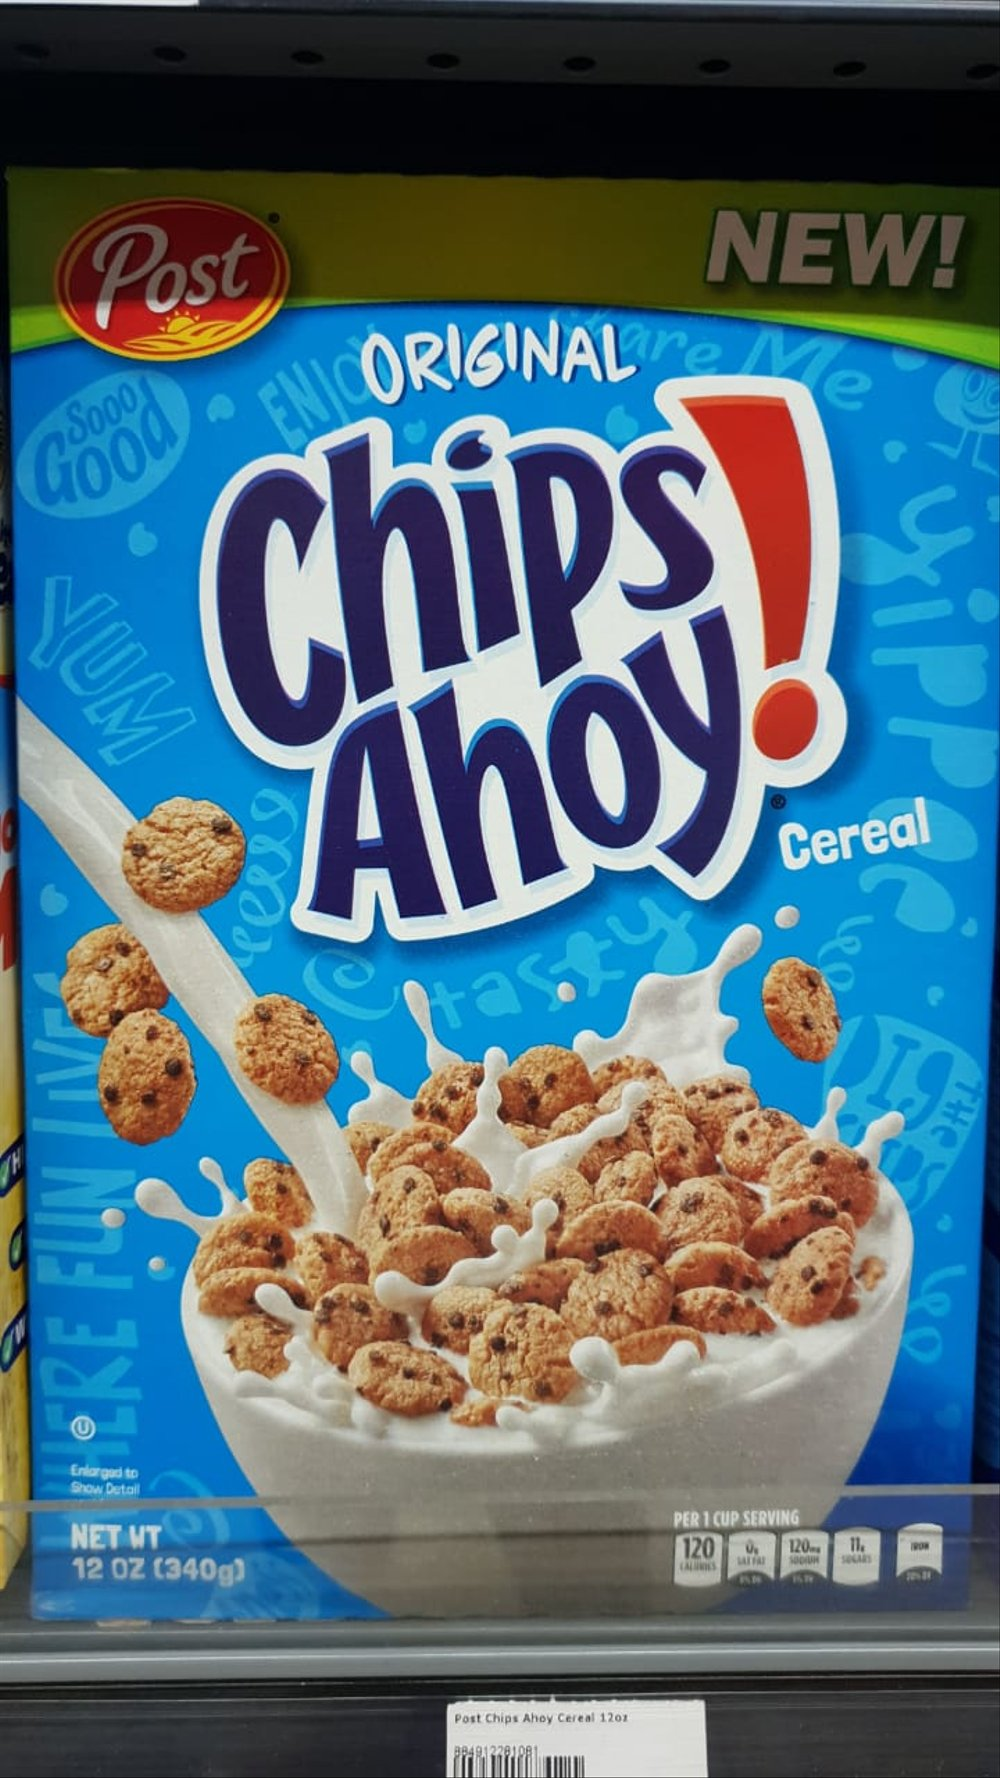 Splendent Chips Ahoy Cereal Jual Chips Ahoy Cereal Di Lapak Caritas Cooking Baking Shop Chips Ahoy Cereal Walmart Chips Ahoy Cereal Amazon nice food Chips Ahoy Cereal